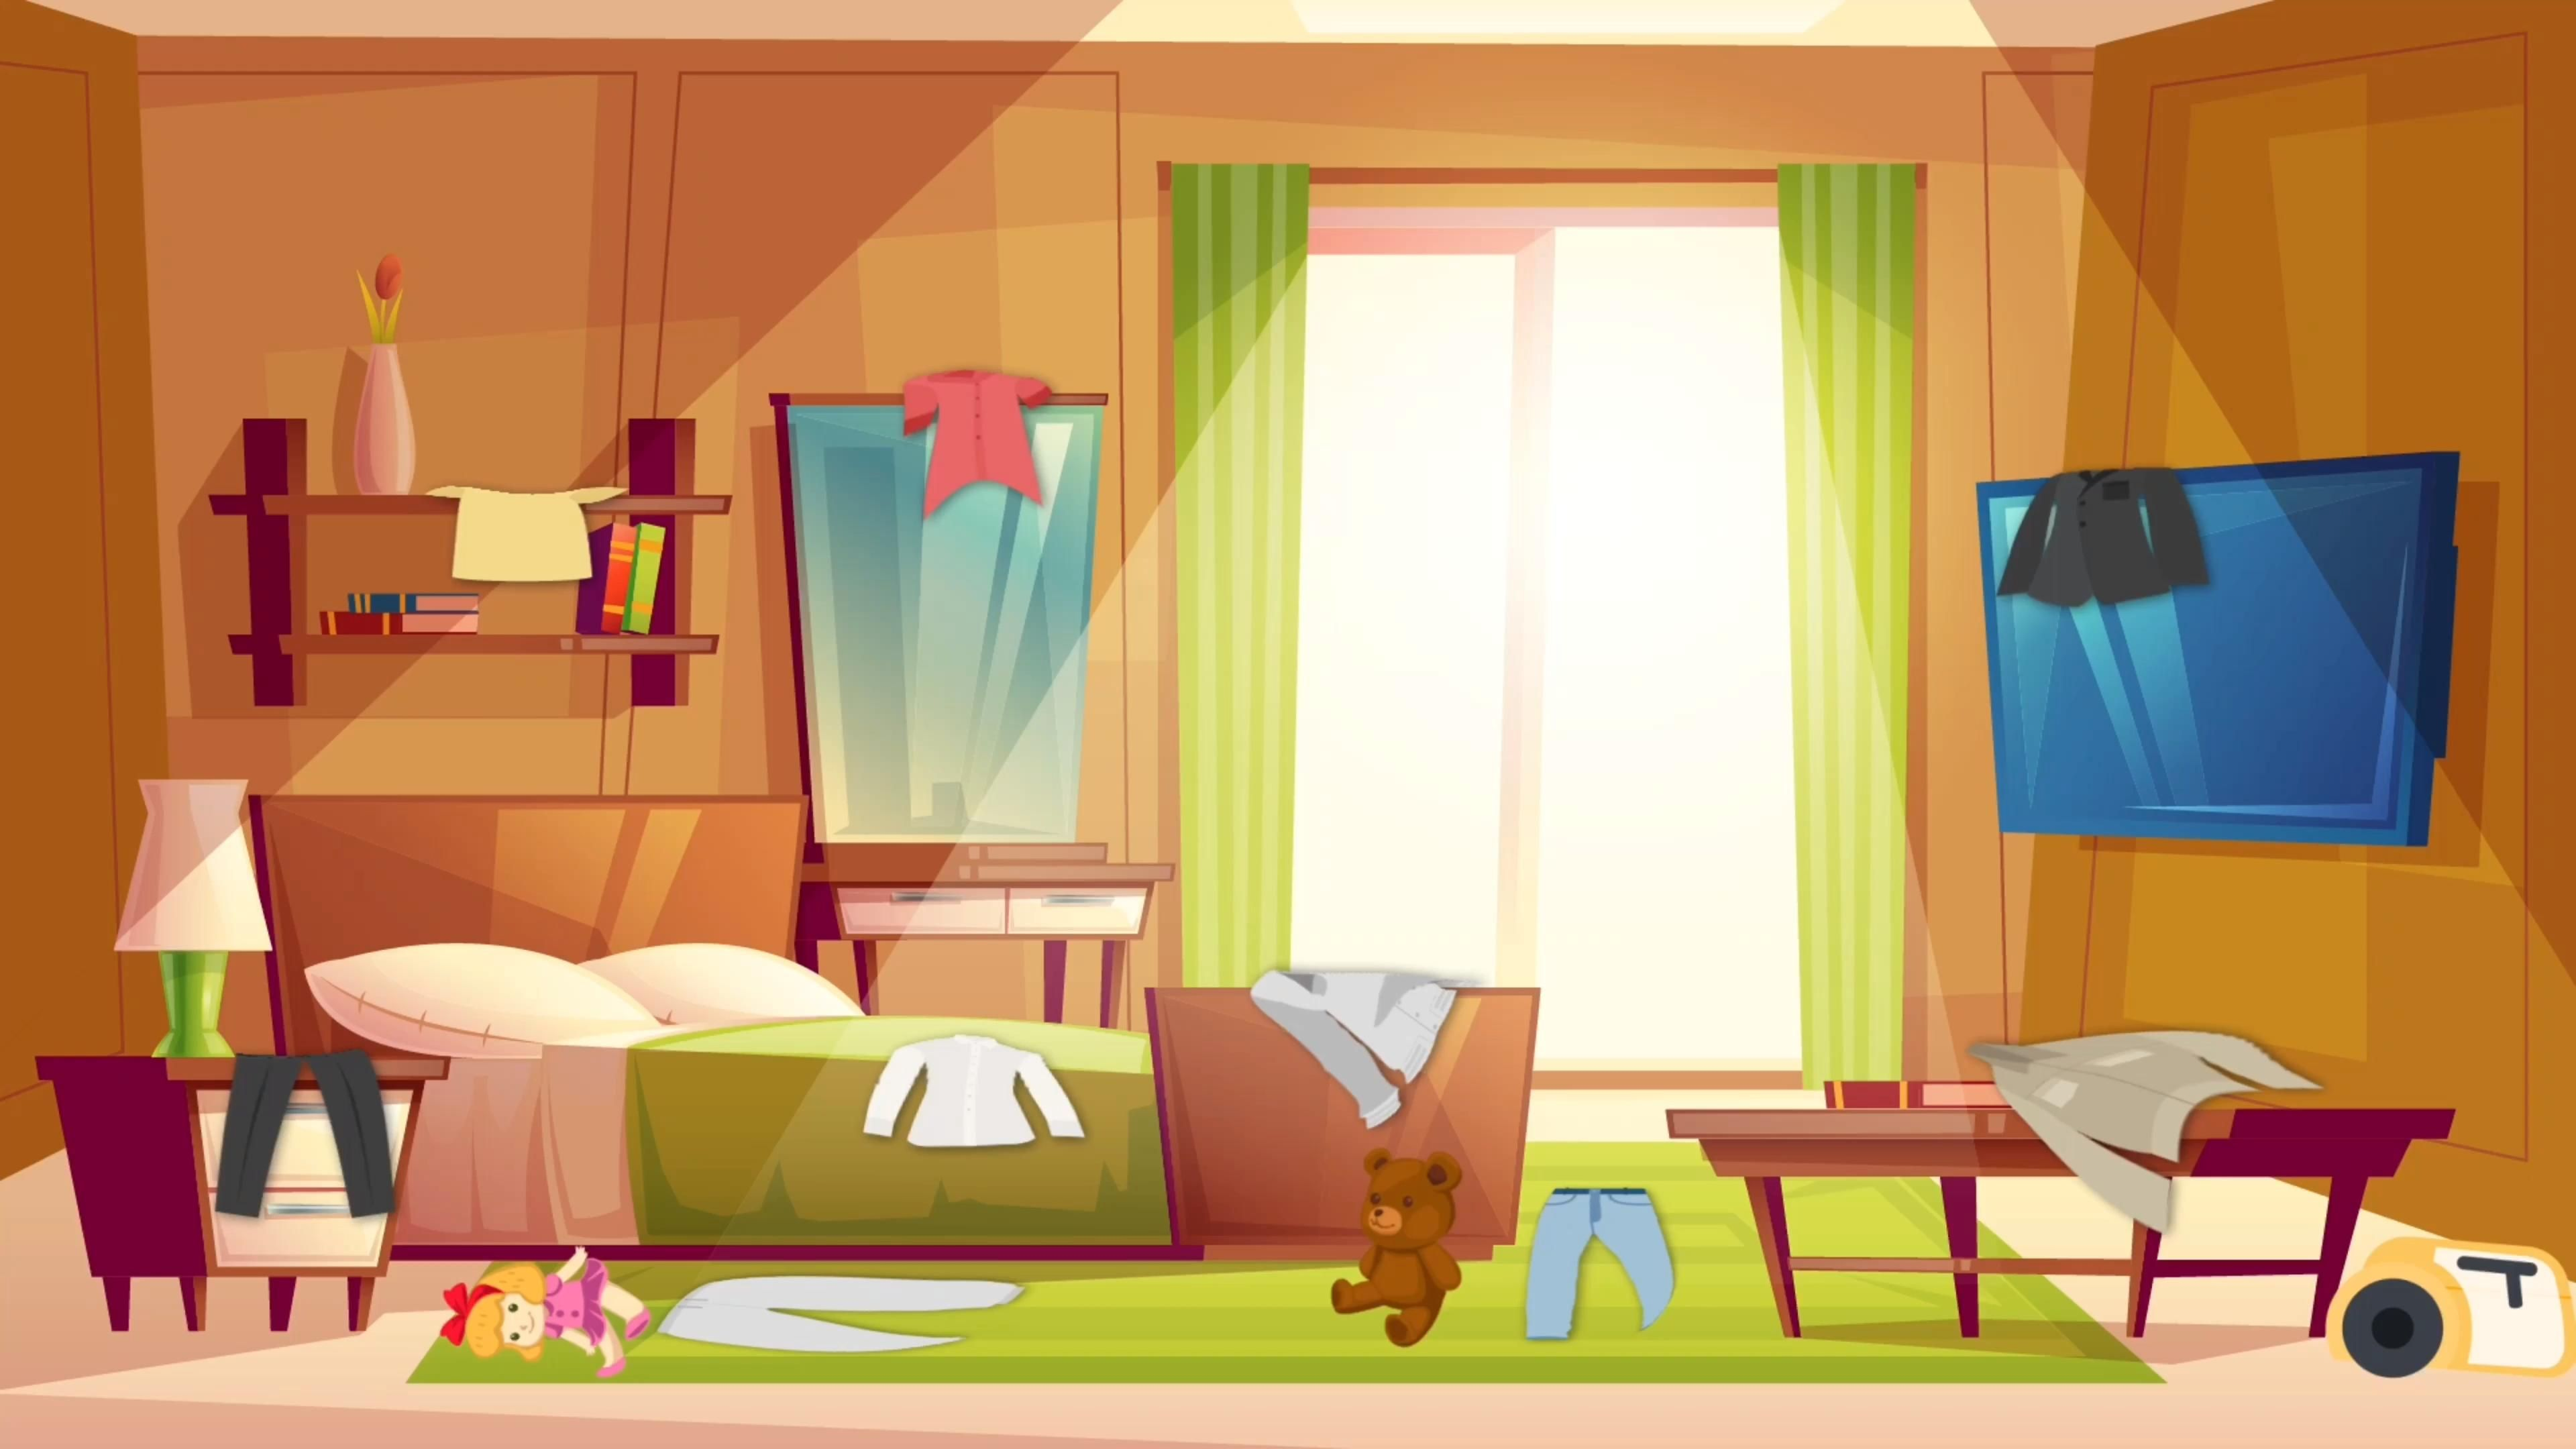 The Best Vacuum Storage Bags Video Modern Bedroom Cartoon Background House Inside Living room background animated